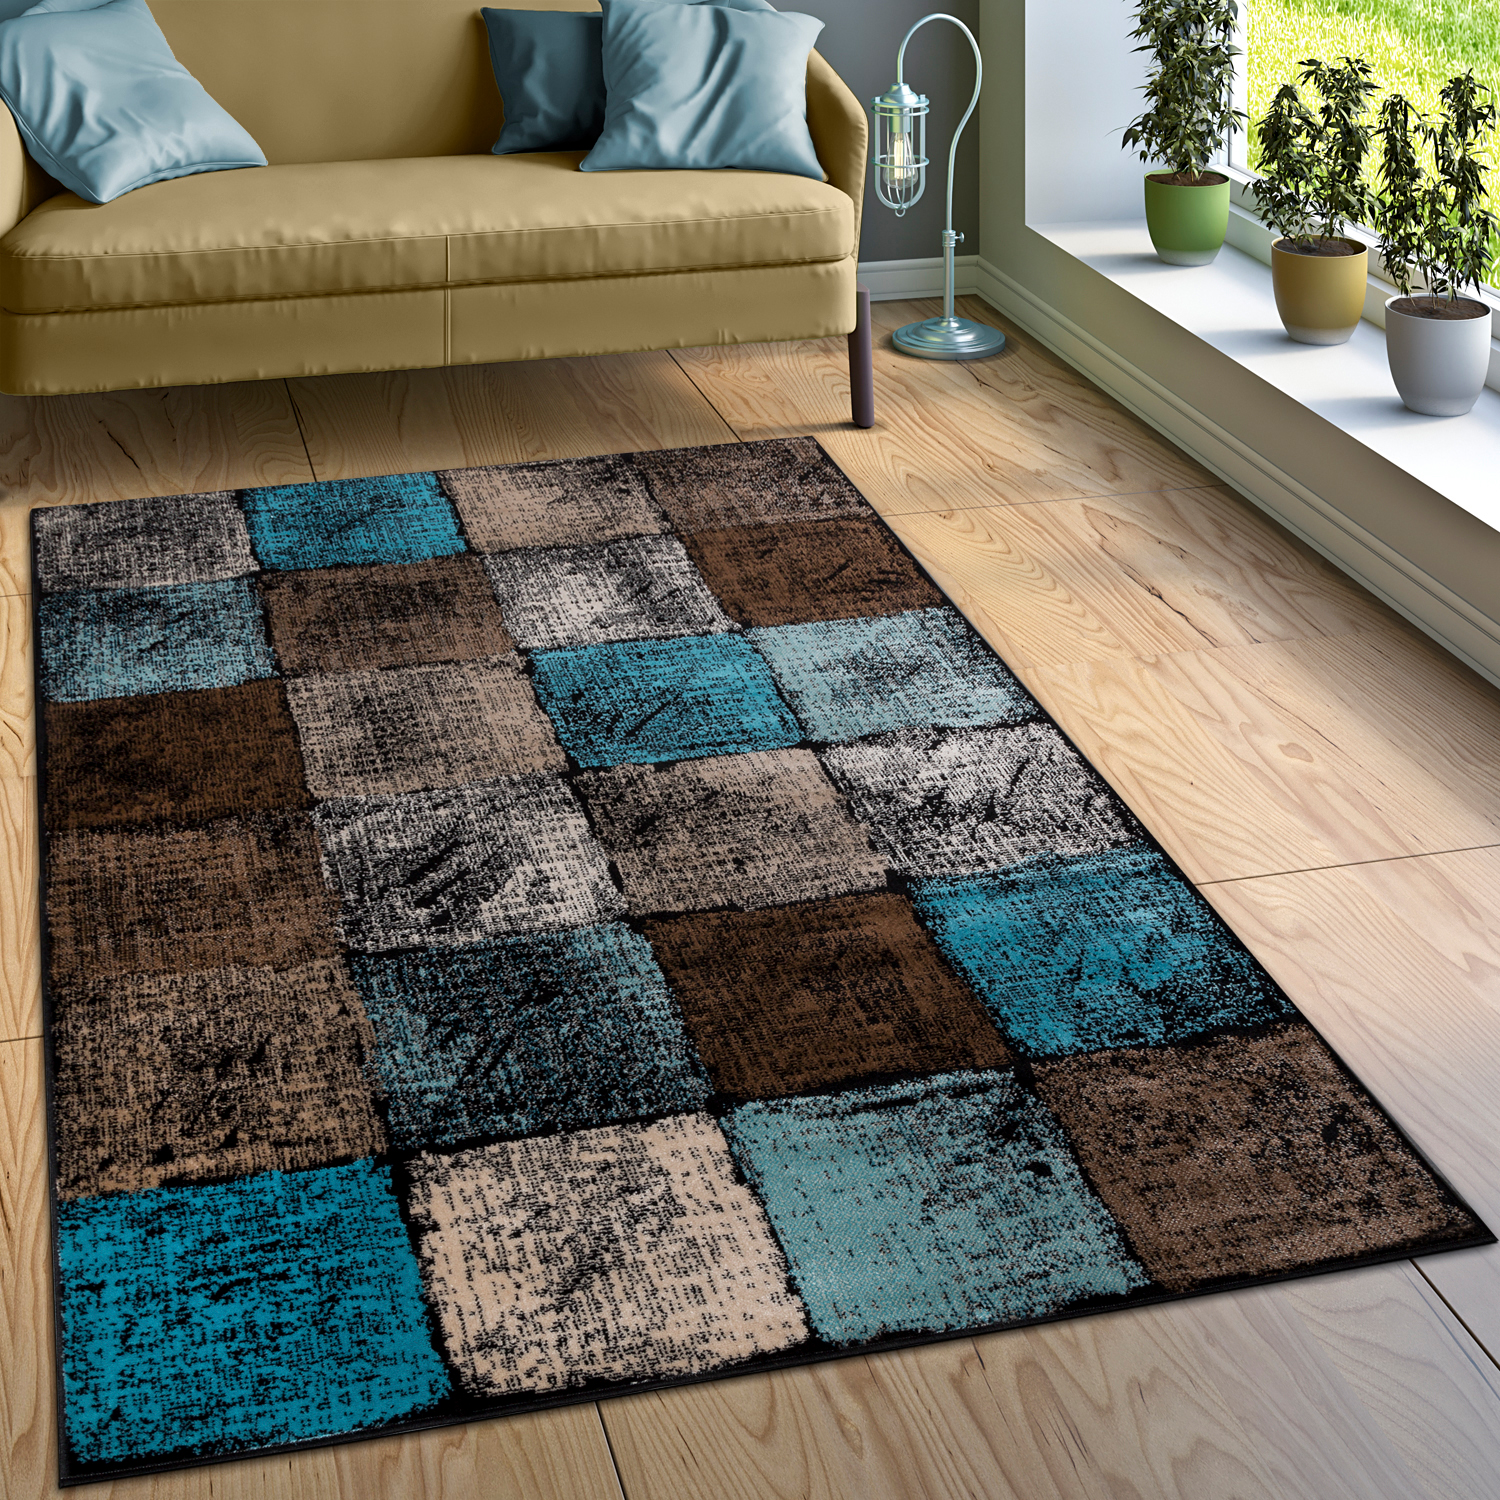 Turquoise And Brown Rug: Designer Rug Checked Turquoise Brown Cream